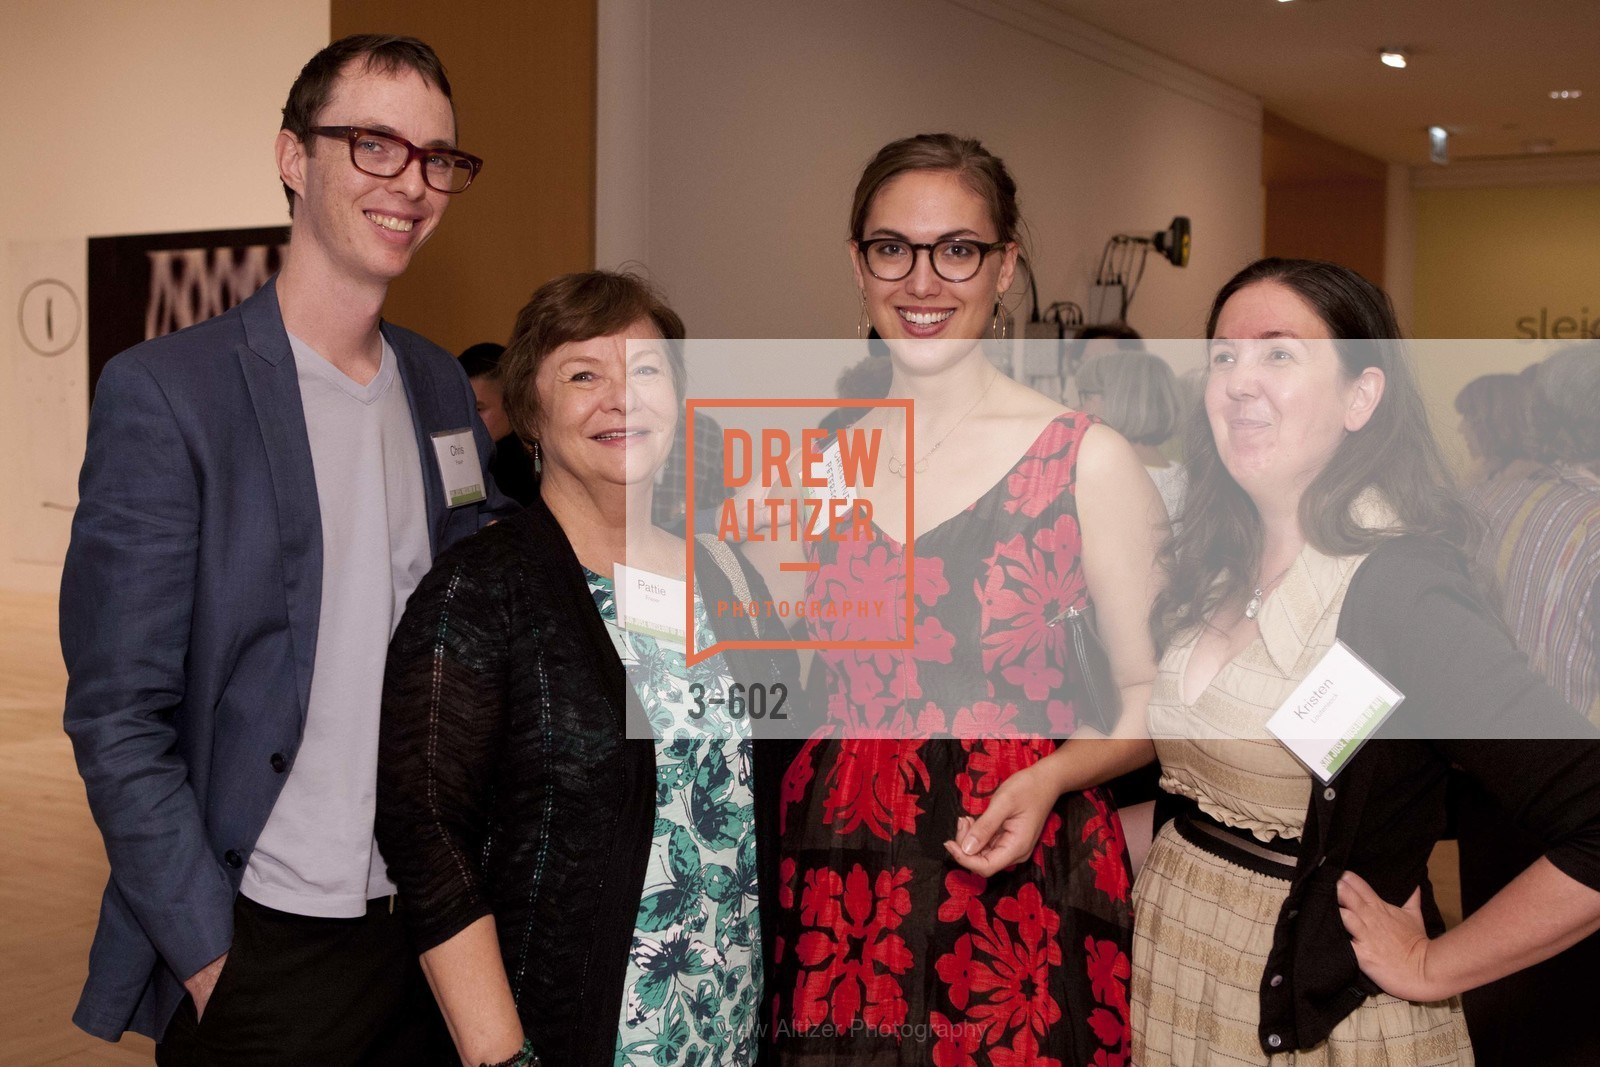 Chris Fraser, Patty Fraser, Christine Peterson, Kristen Loutensock, SAN JOSE MUSEUM OF ART Fall Reception Opening, US, October 8th, 2014,Drew Altizer, Drew Altizer Photography, full-service agency, private events, San Francisco photographer, photographer california